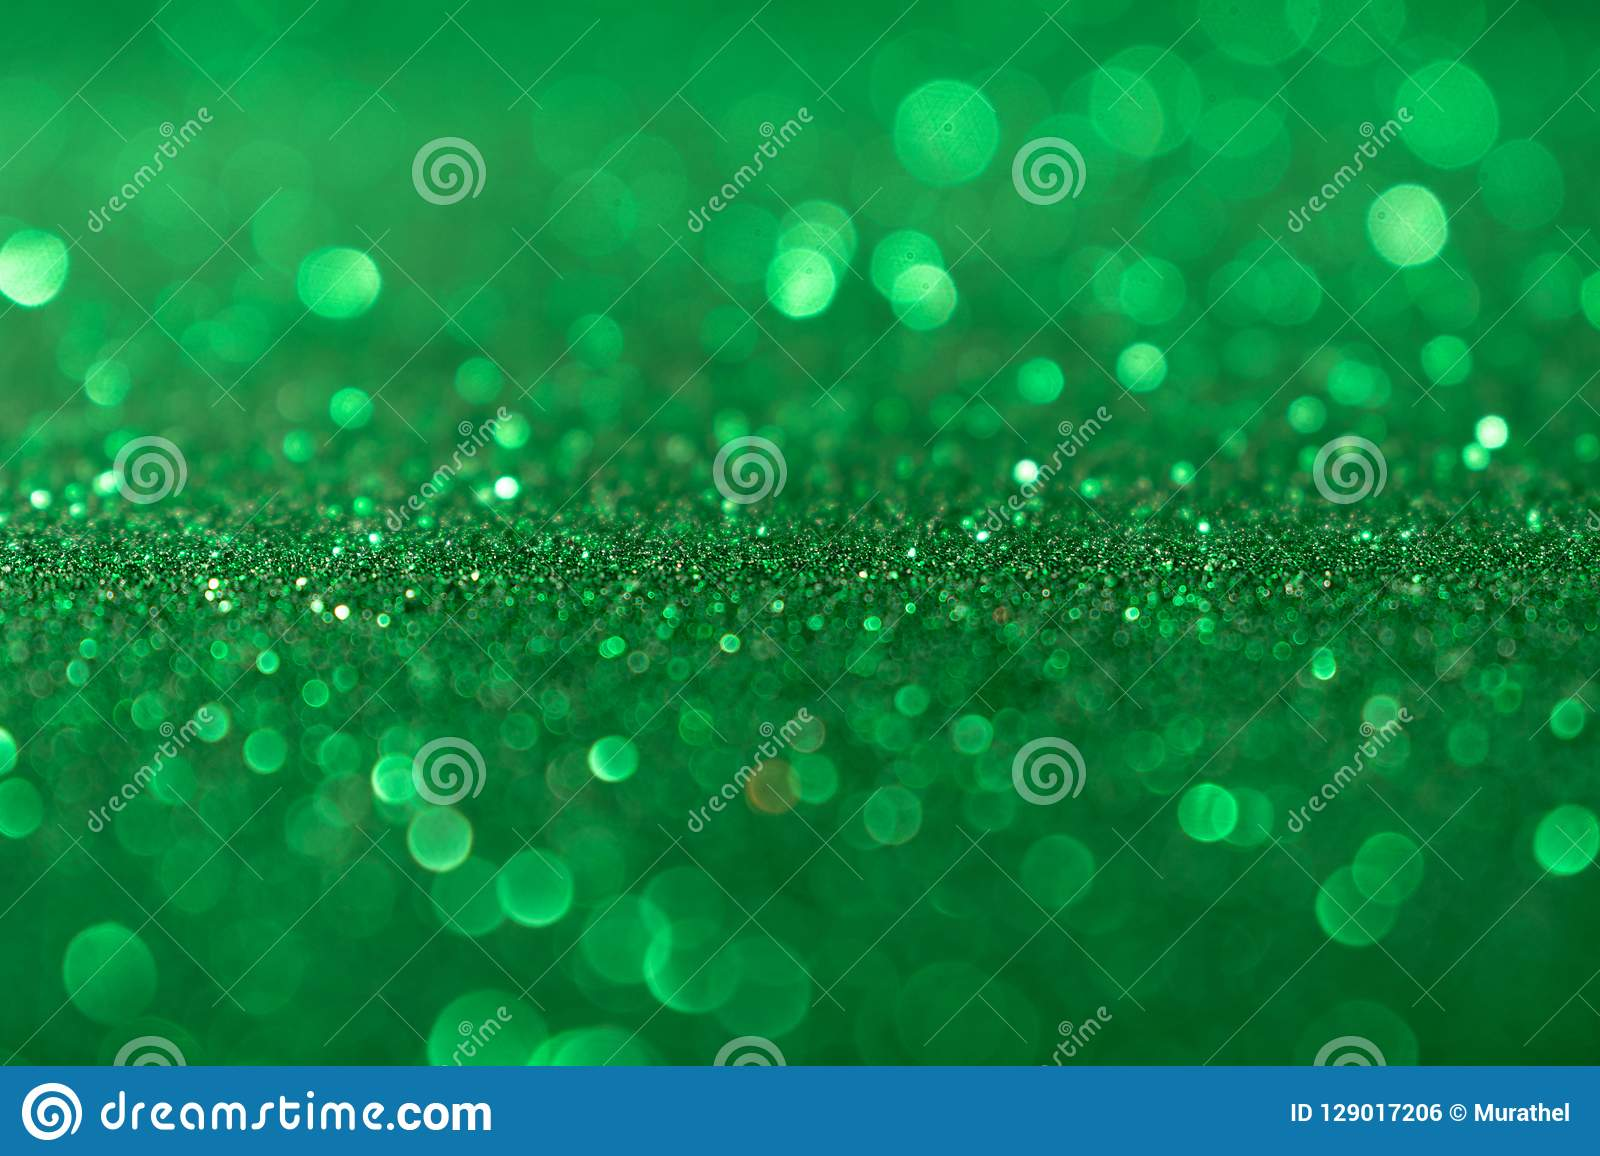 Christmas New Year Valentine Day Green Glitter background. Holiday abstract texture fabric. Element, flash.